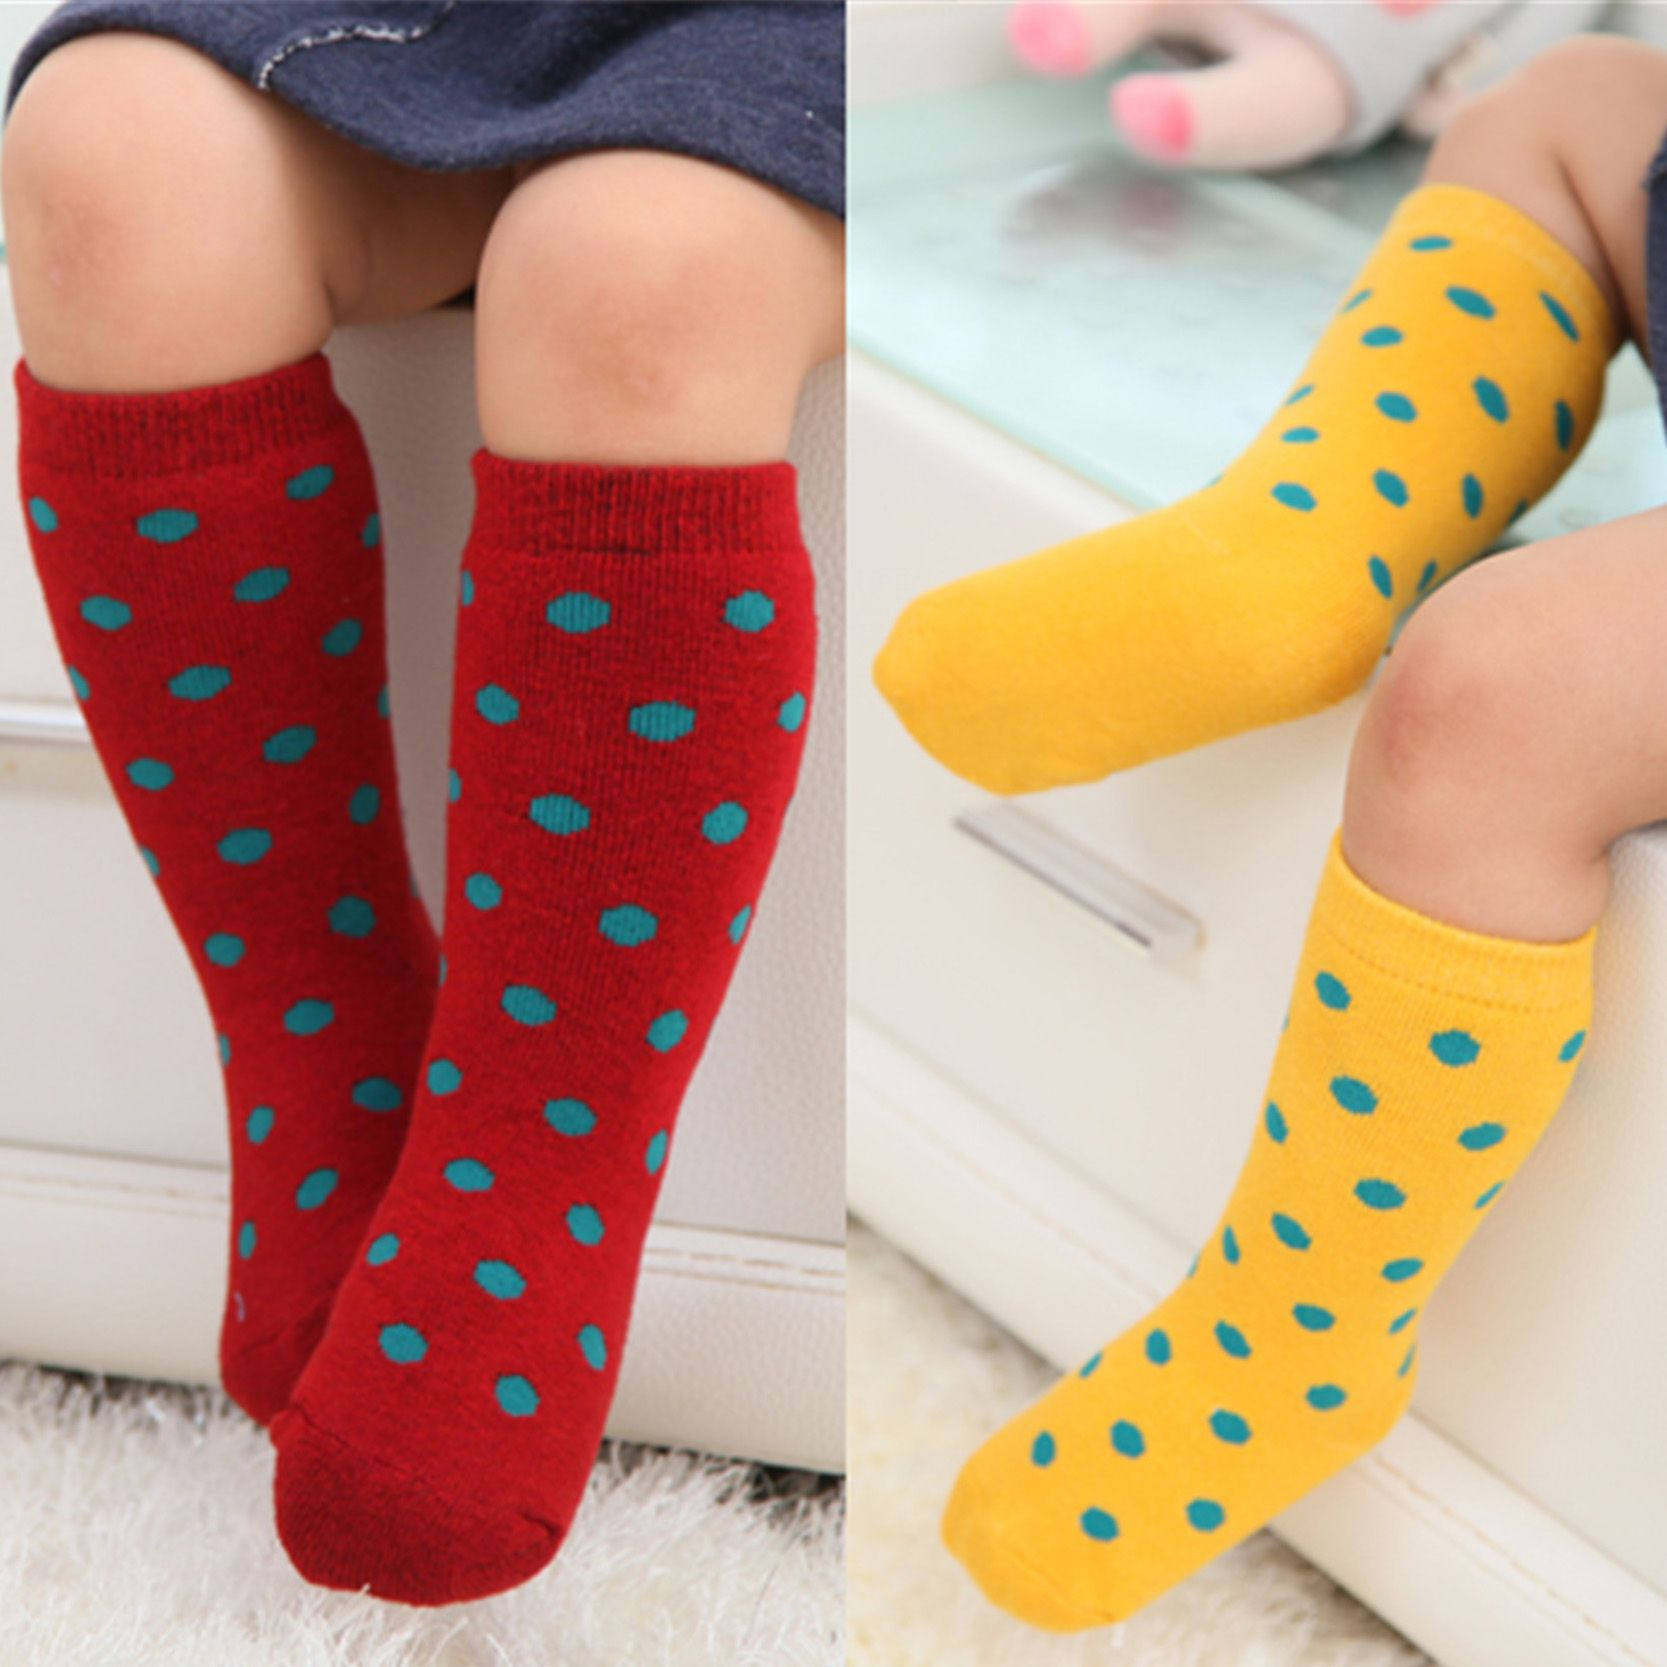 Terry Winter Kids Socks For Infant Girl Boy Cute Dots Baby Knee High